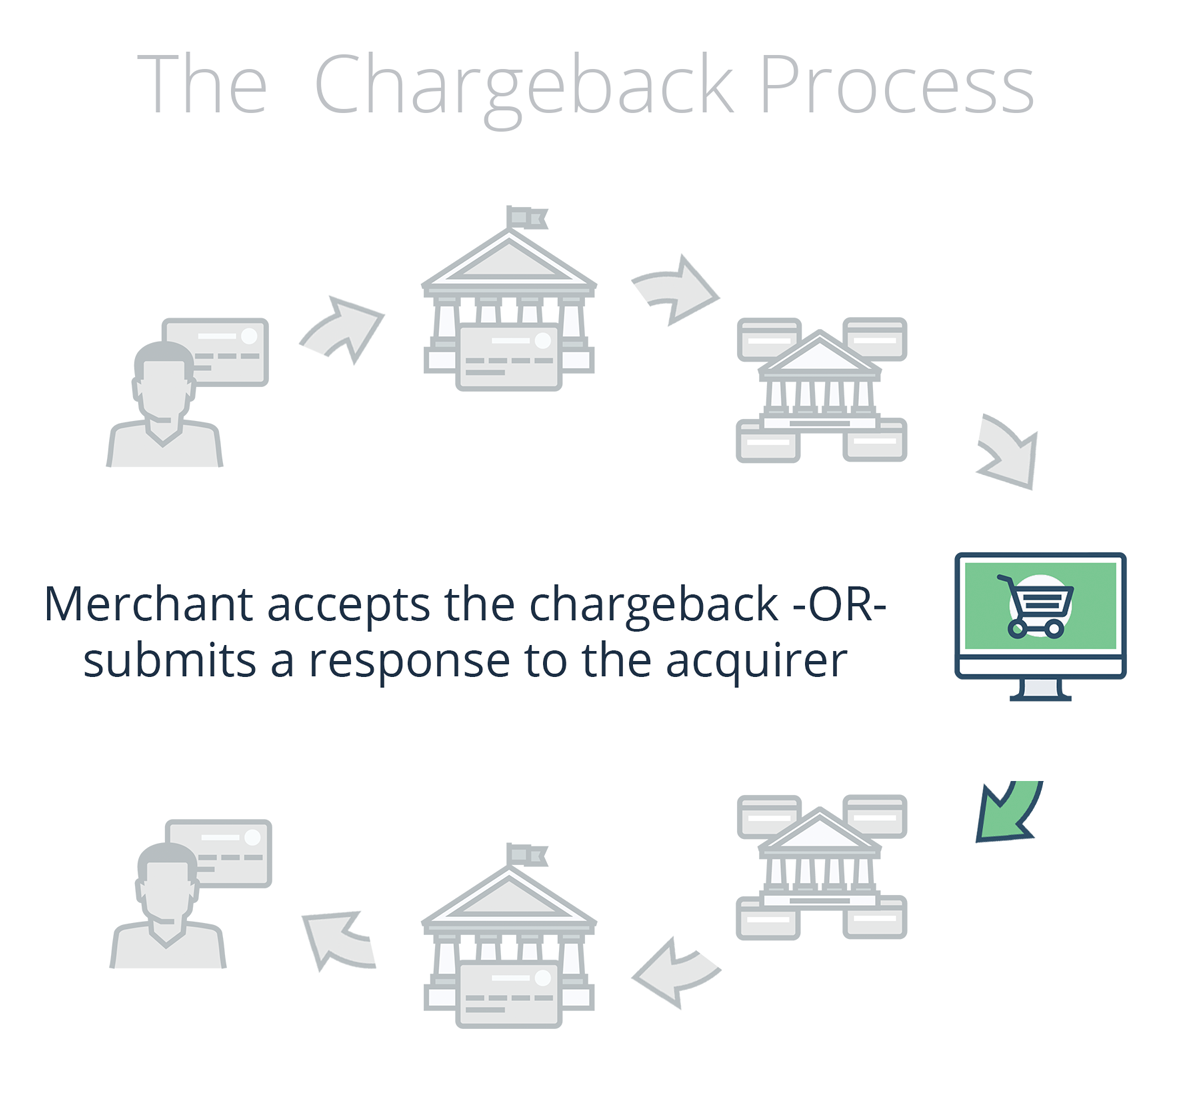 Merchant accepts or responds